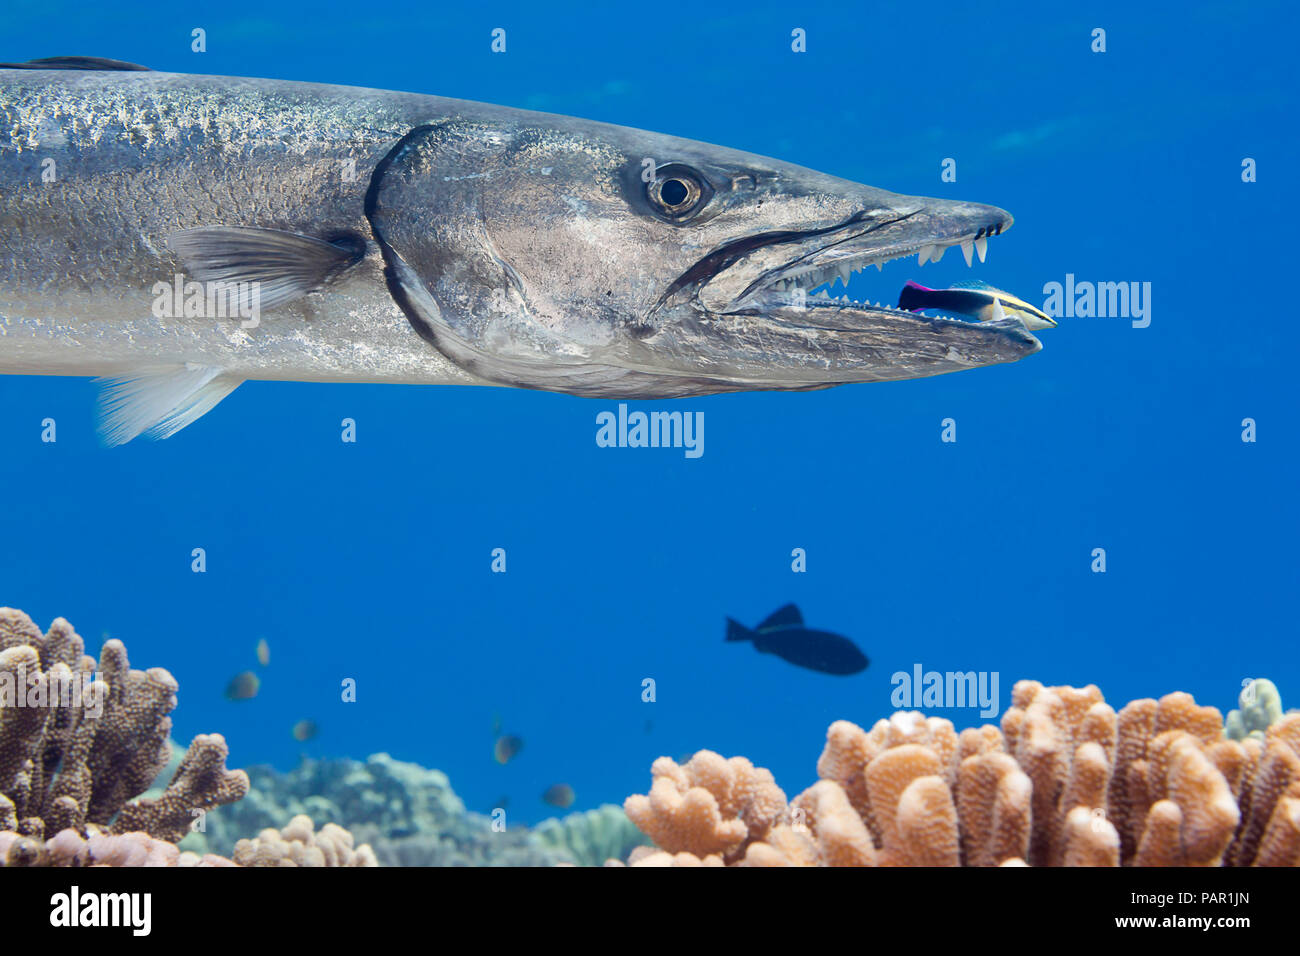 Great barracuda, Sphyraena barracuda, can reach as much as six feet in length. This individual is being cleaned by an endemic Hawaiian cleaner wrasse, Stock Photo